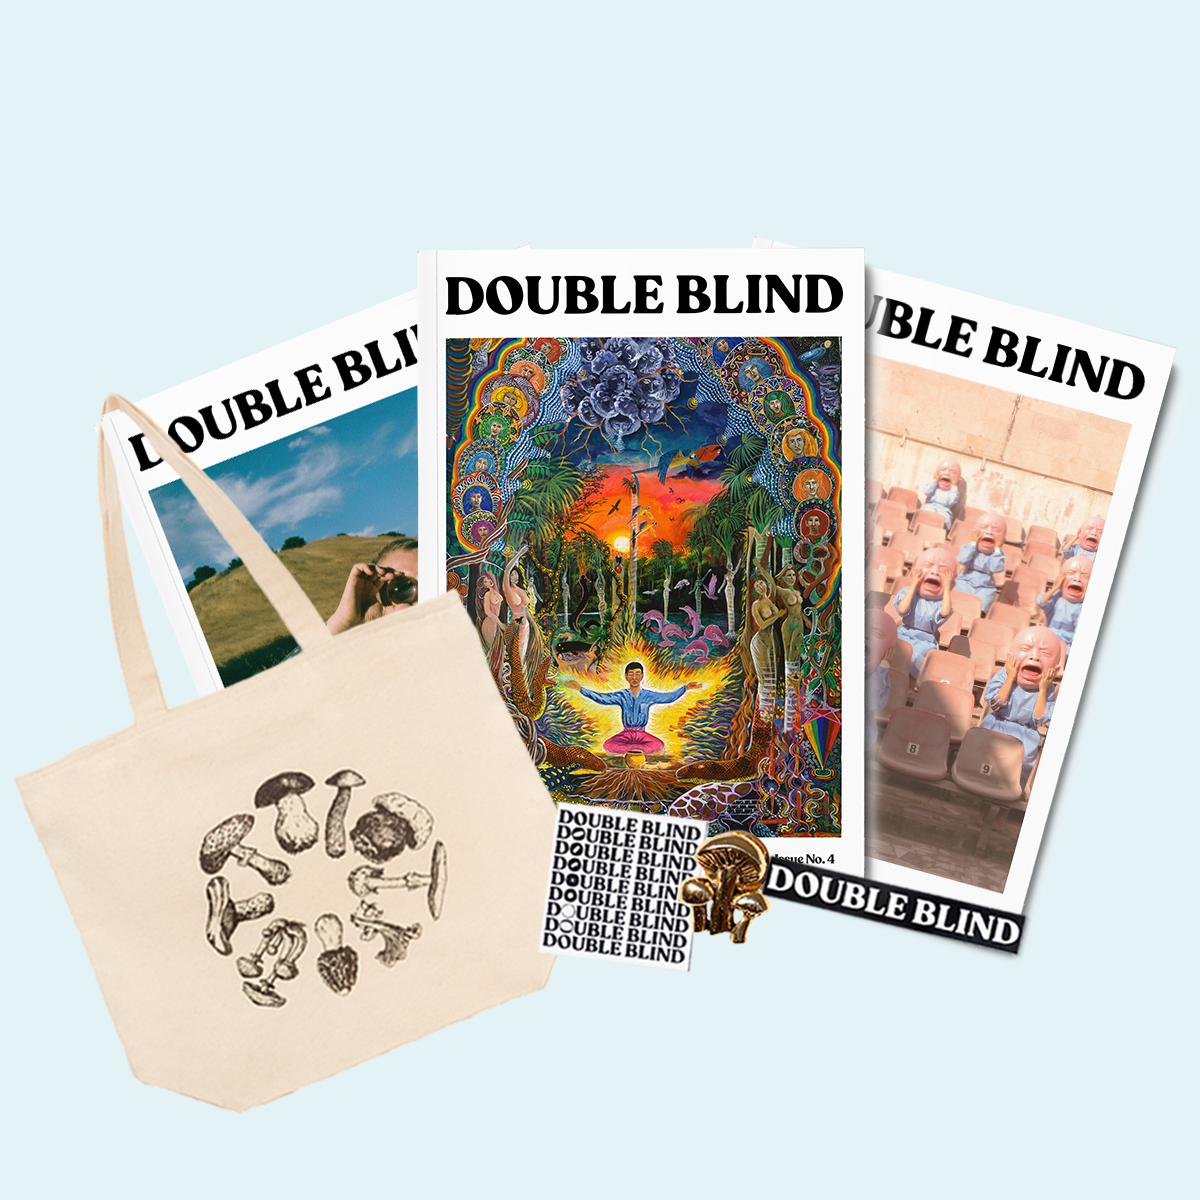 DoubleBlind Essentials Kit, featuring Issue 04 which will be available mid-December.